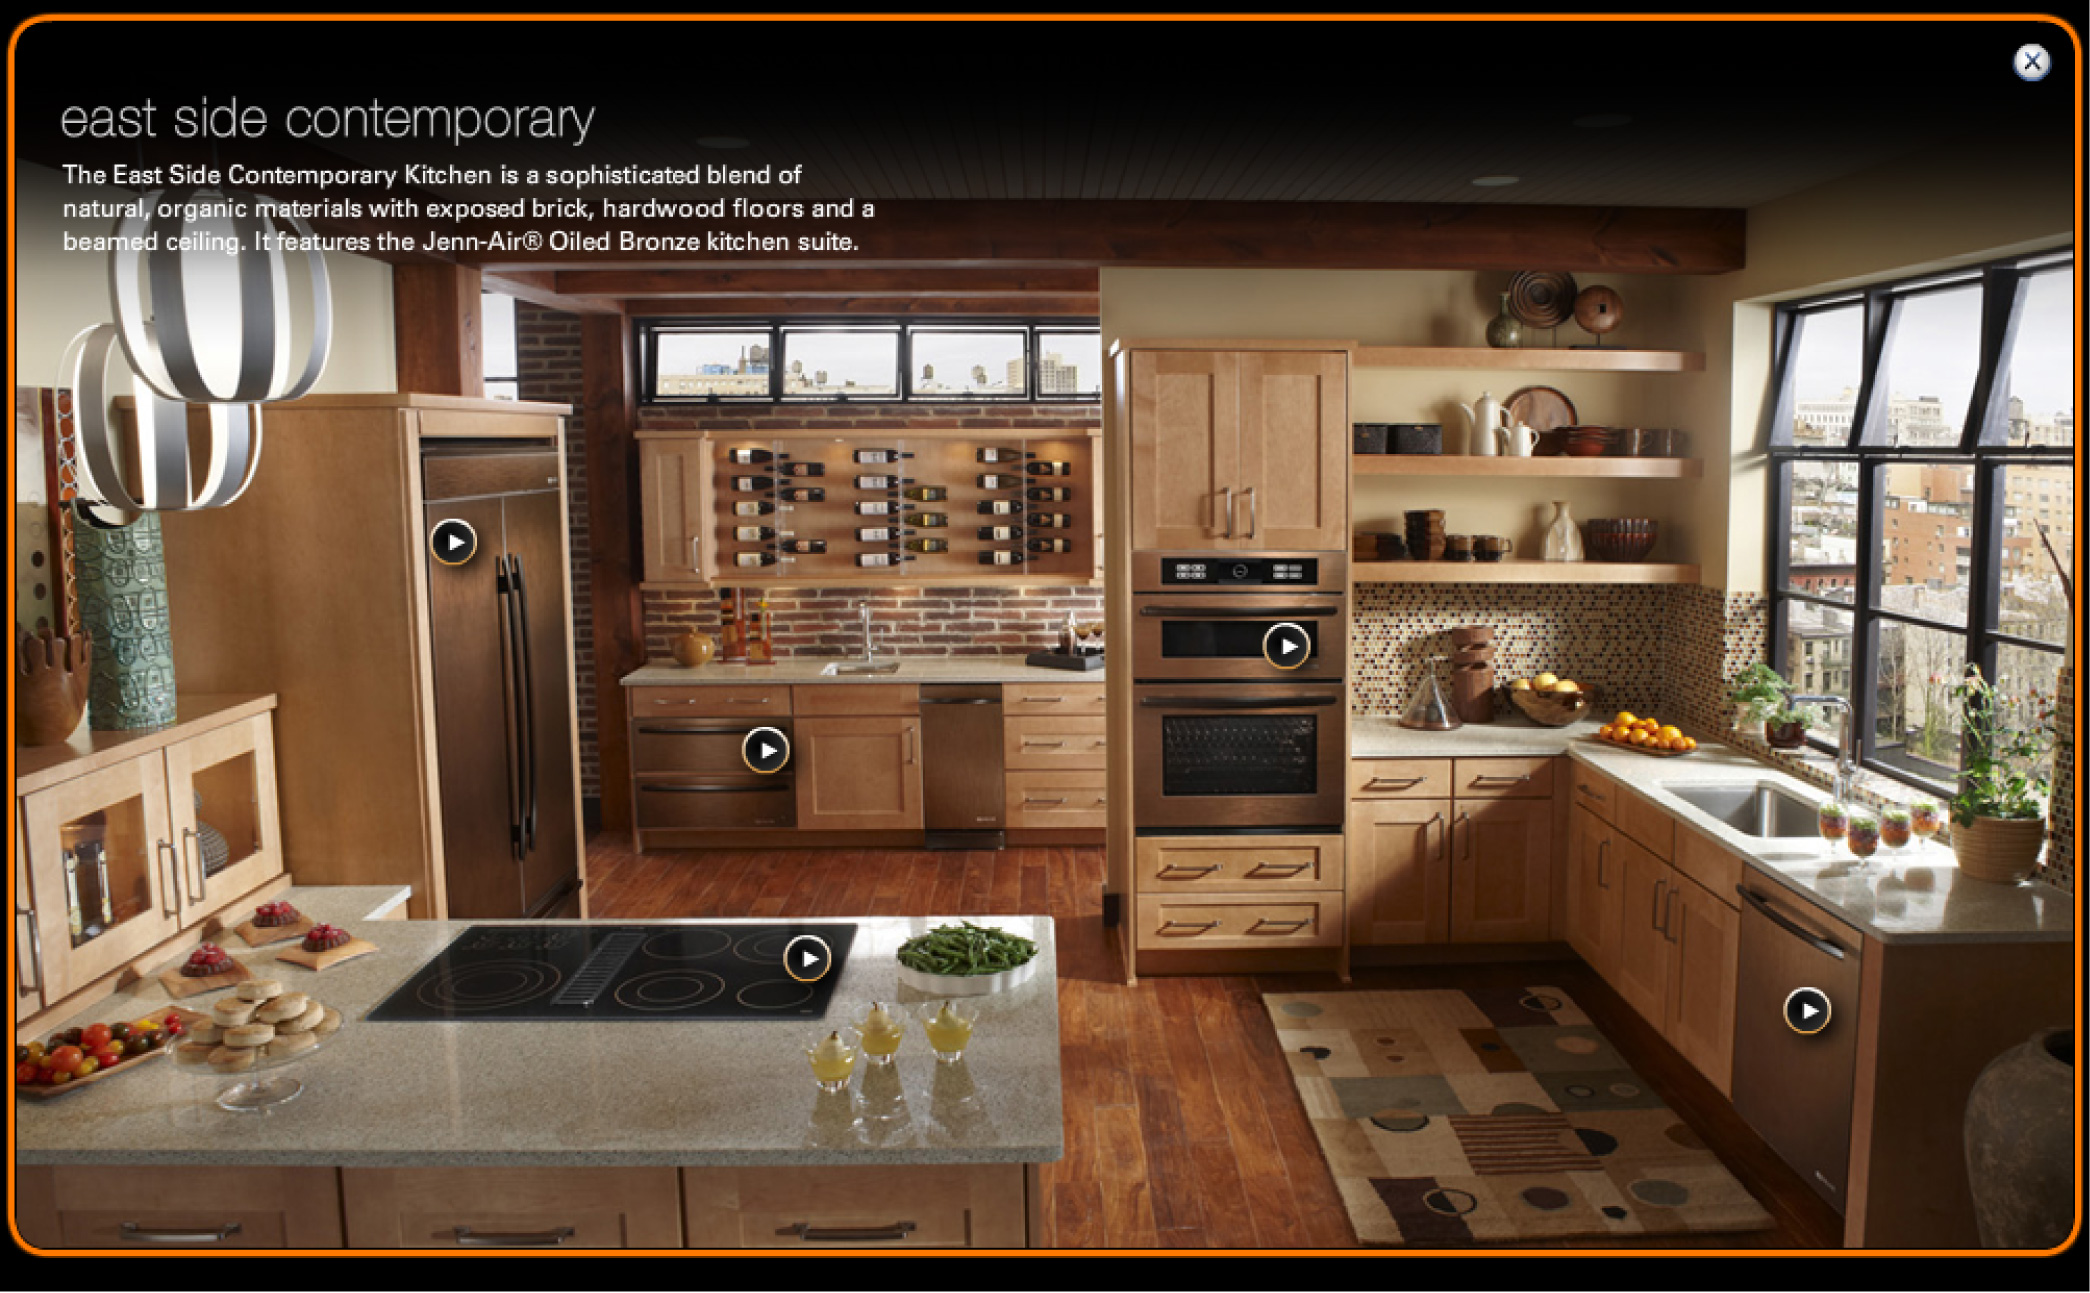 Alternatives to standard appliance colors